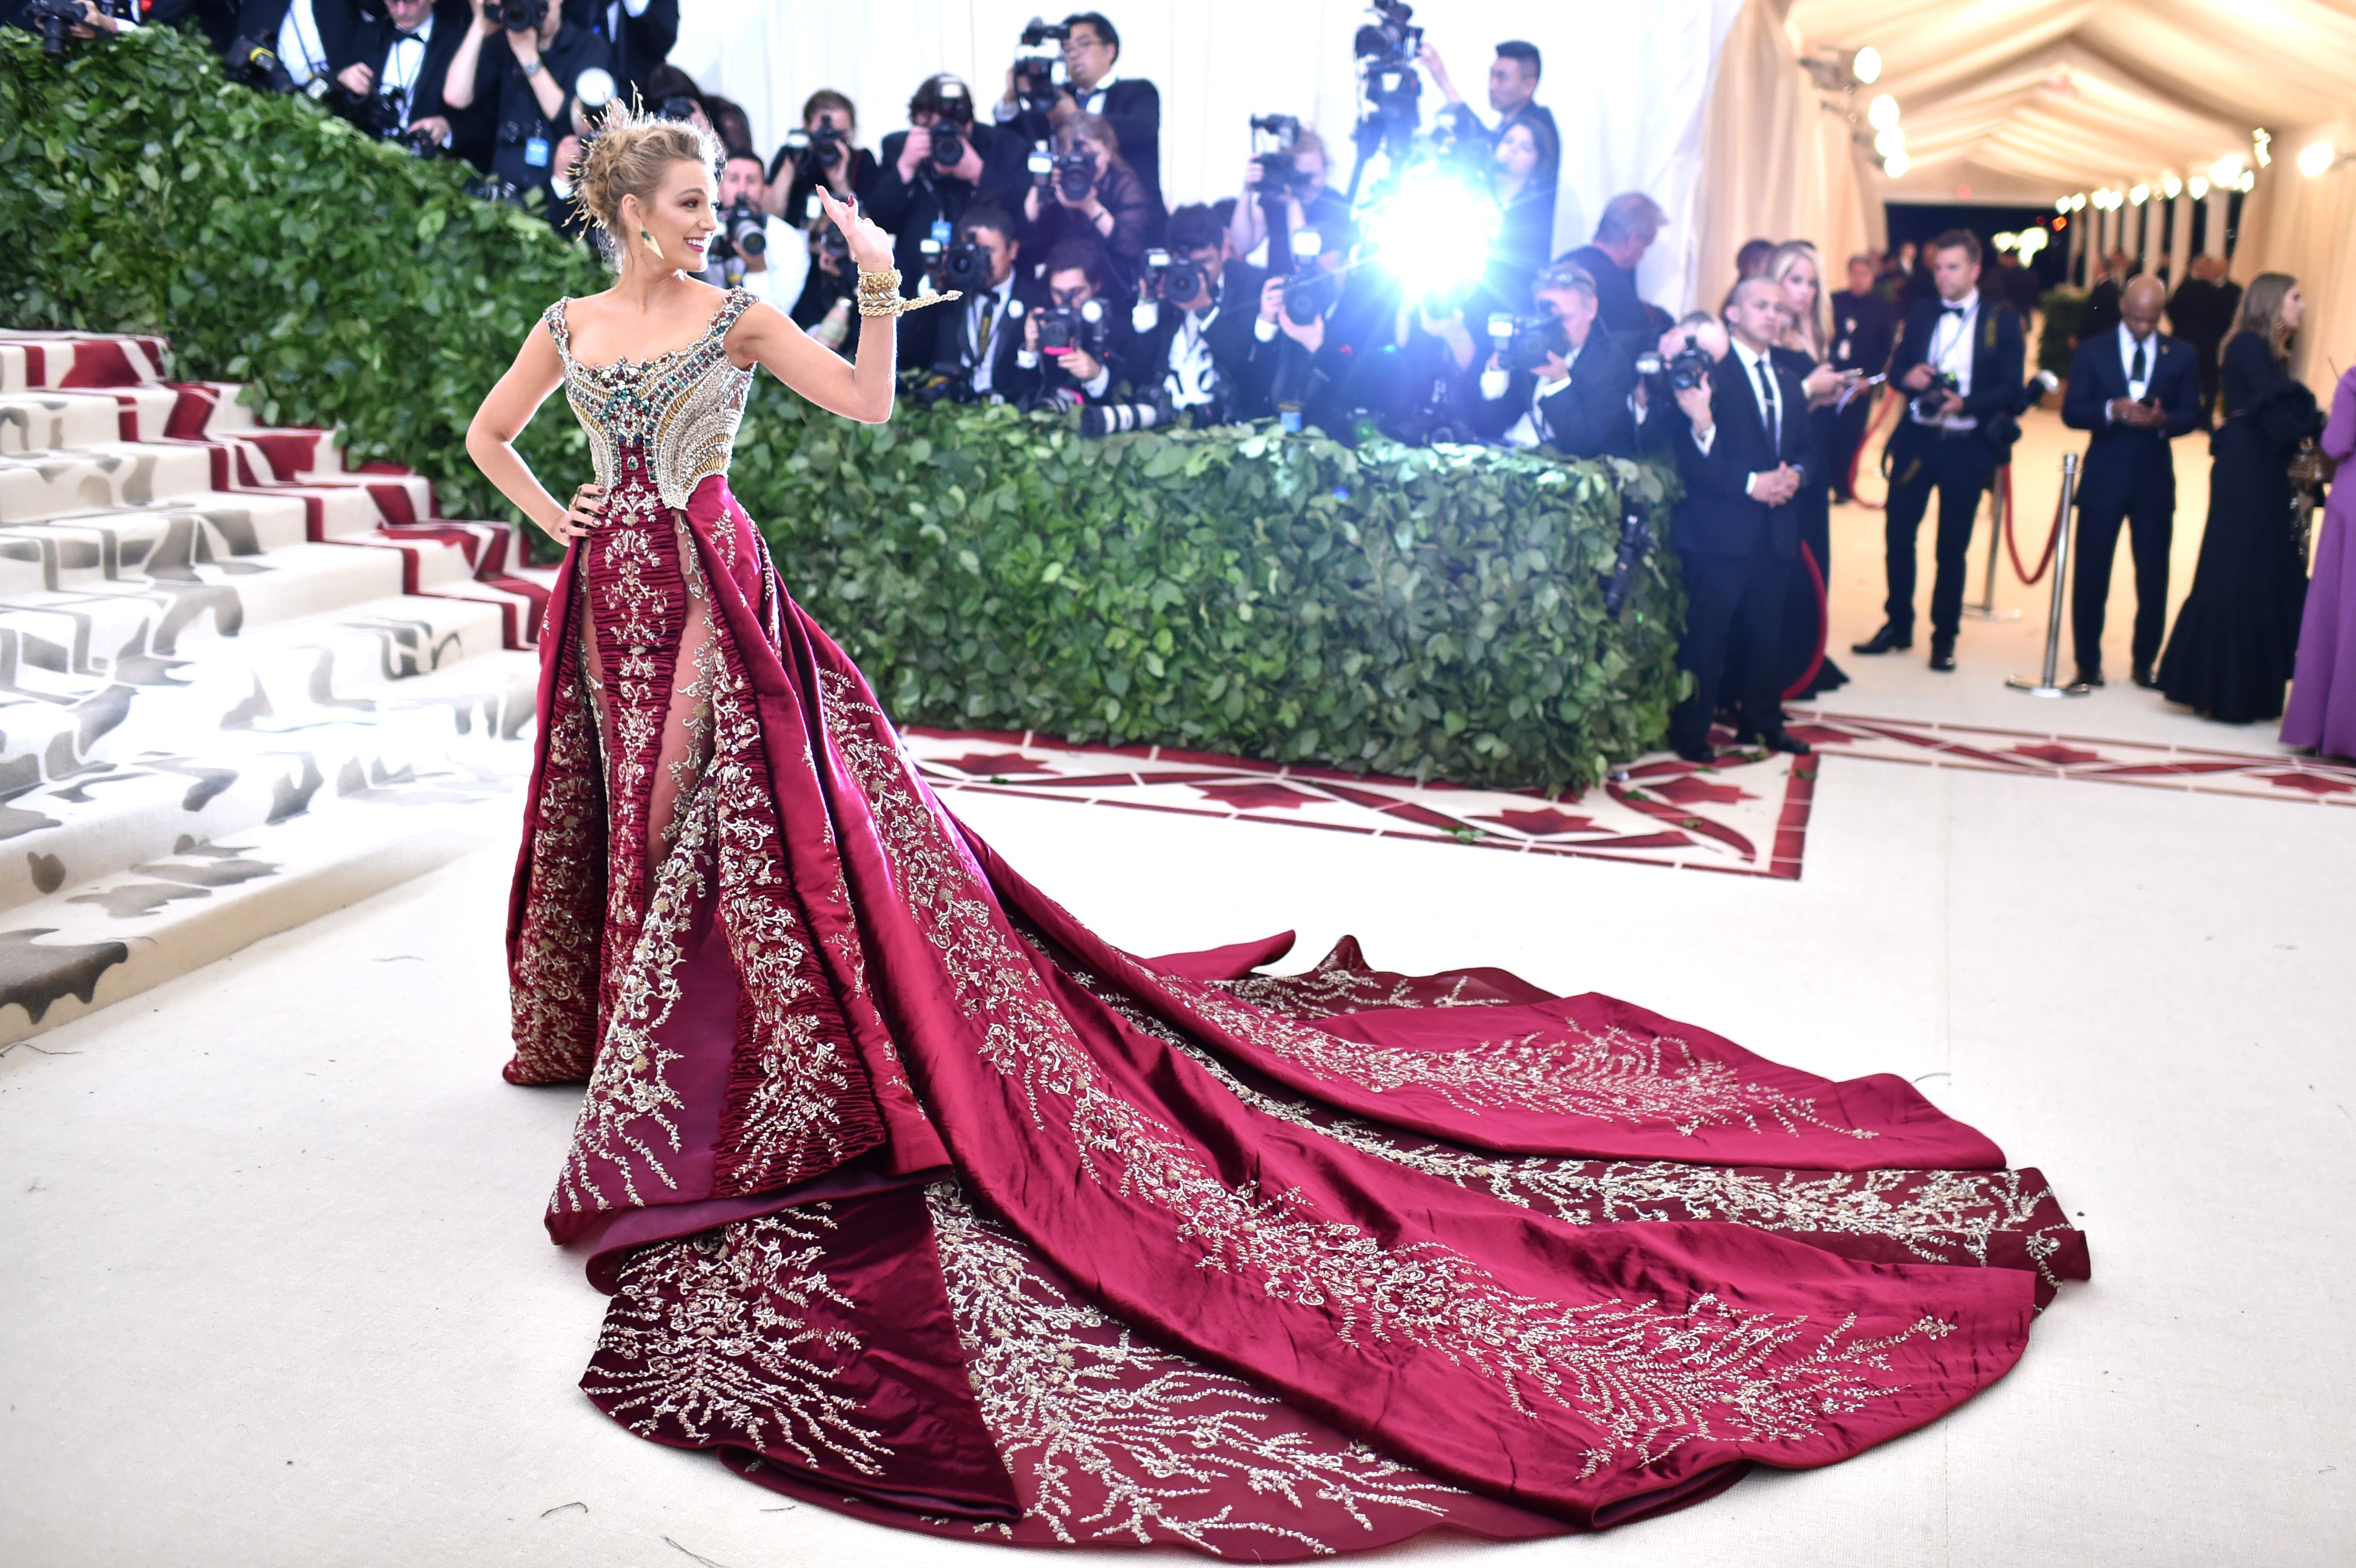 Met Gala 2019: Everything to Know About This Year's Costume Exhibit – WWD